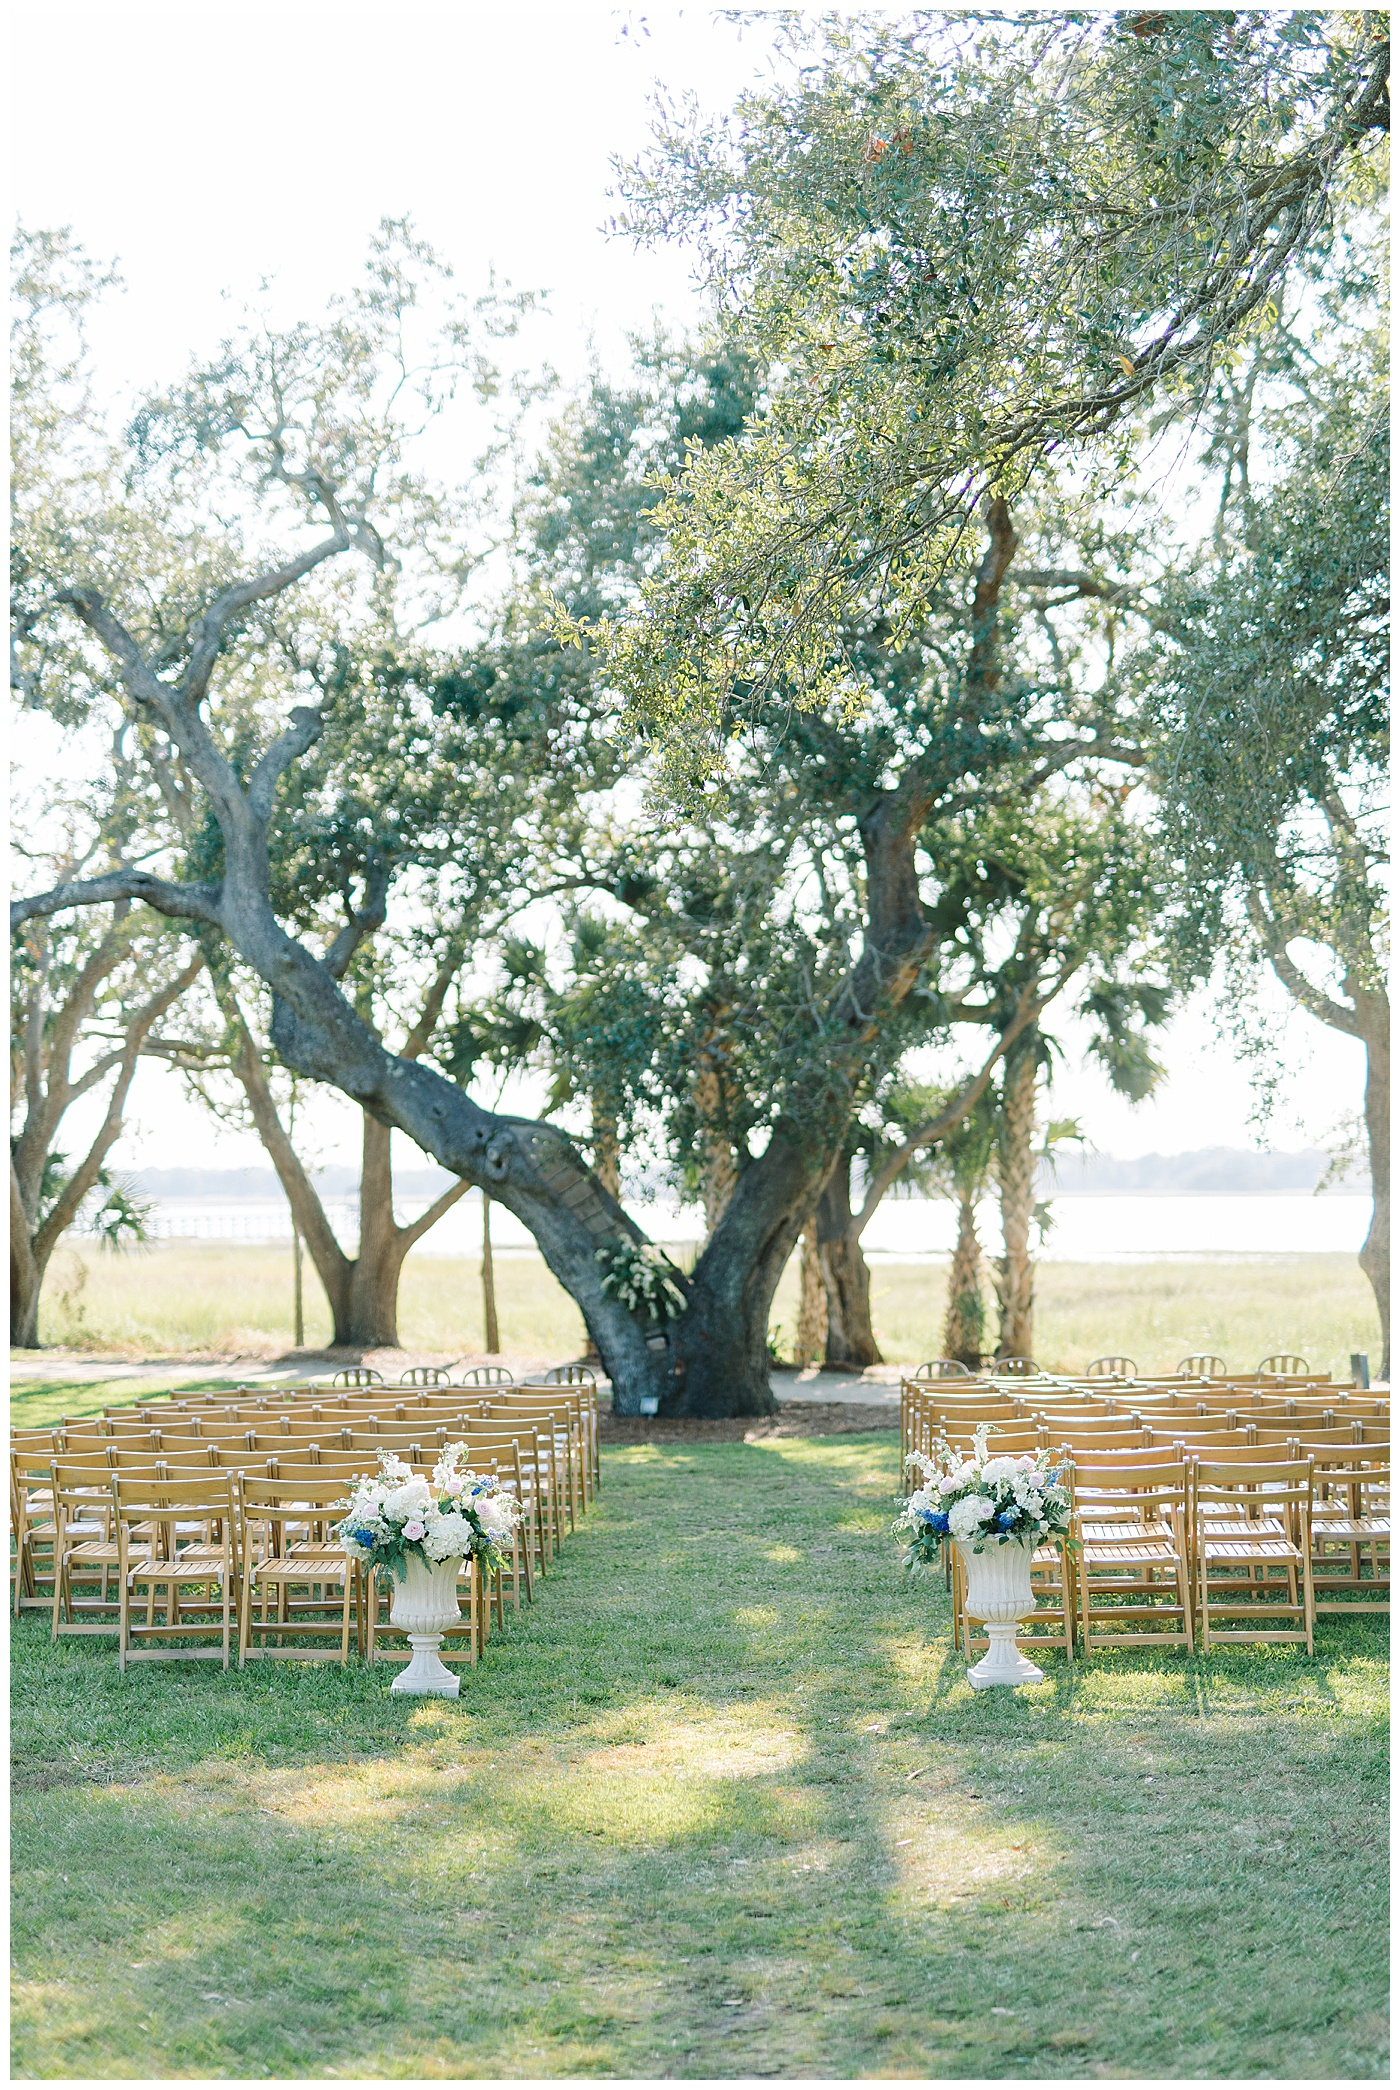 lowndes grove outdoor ceremony venue